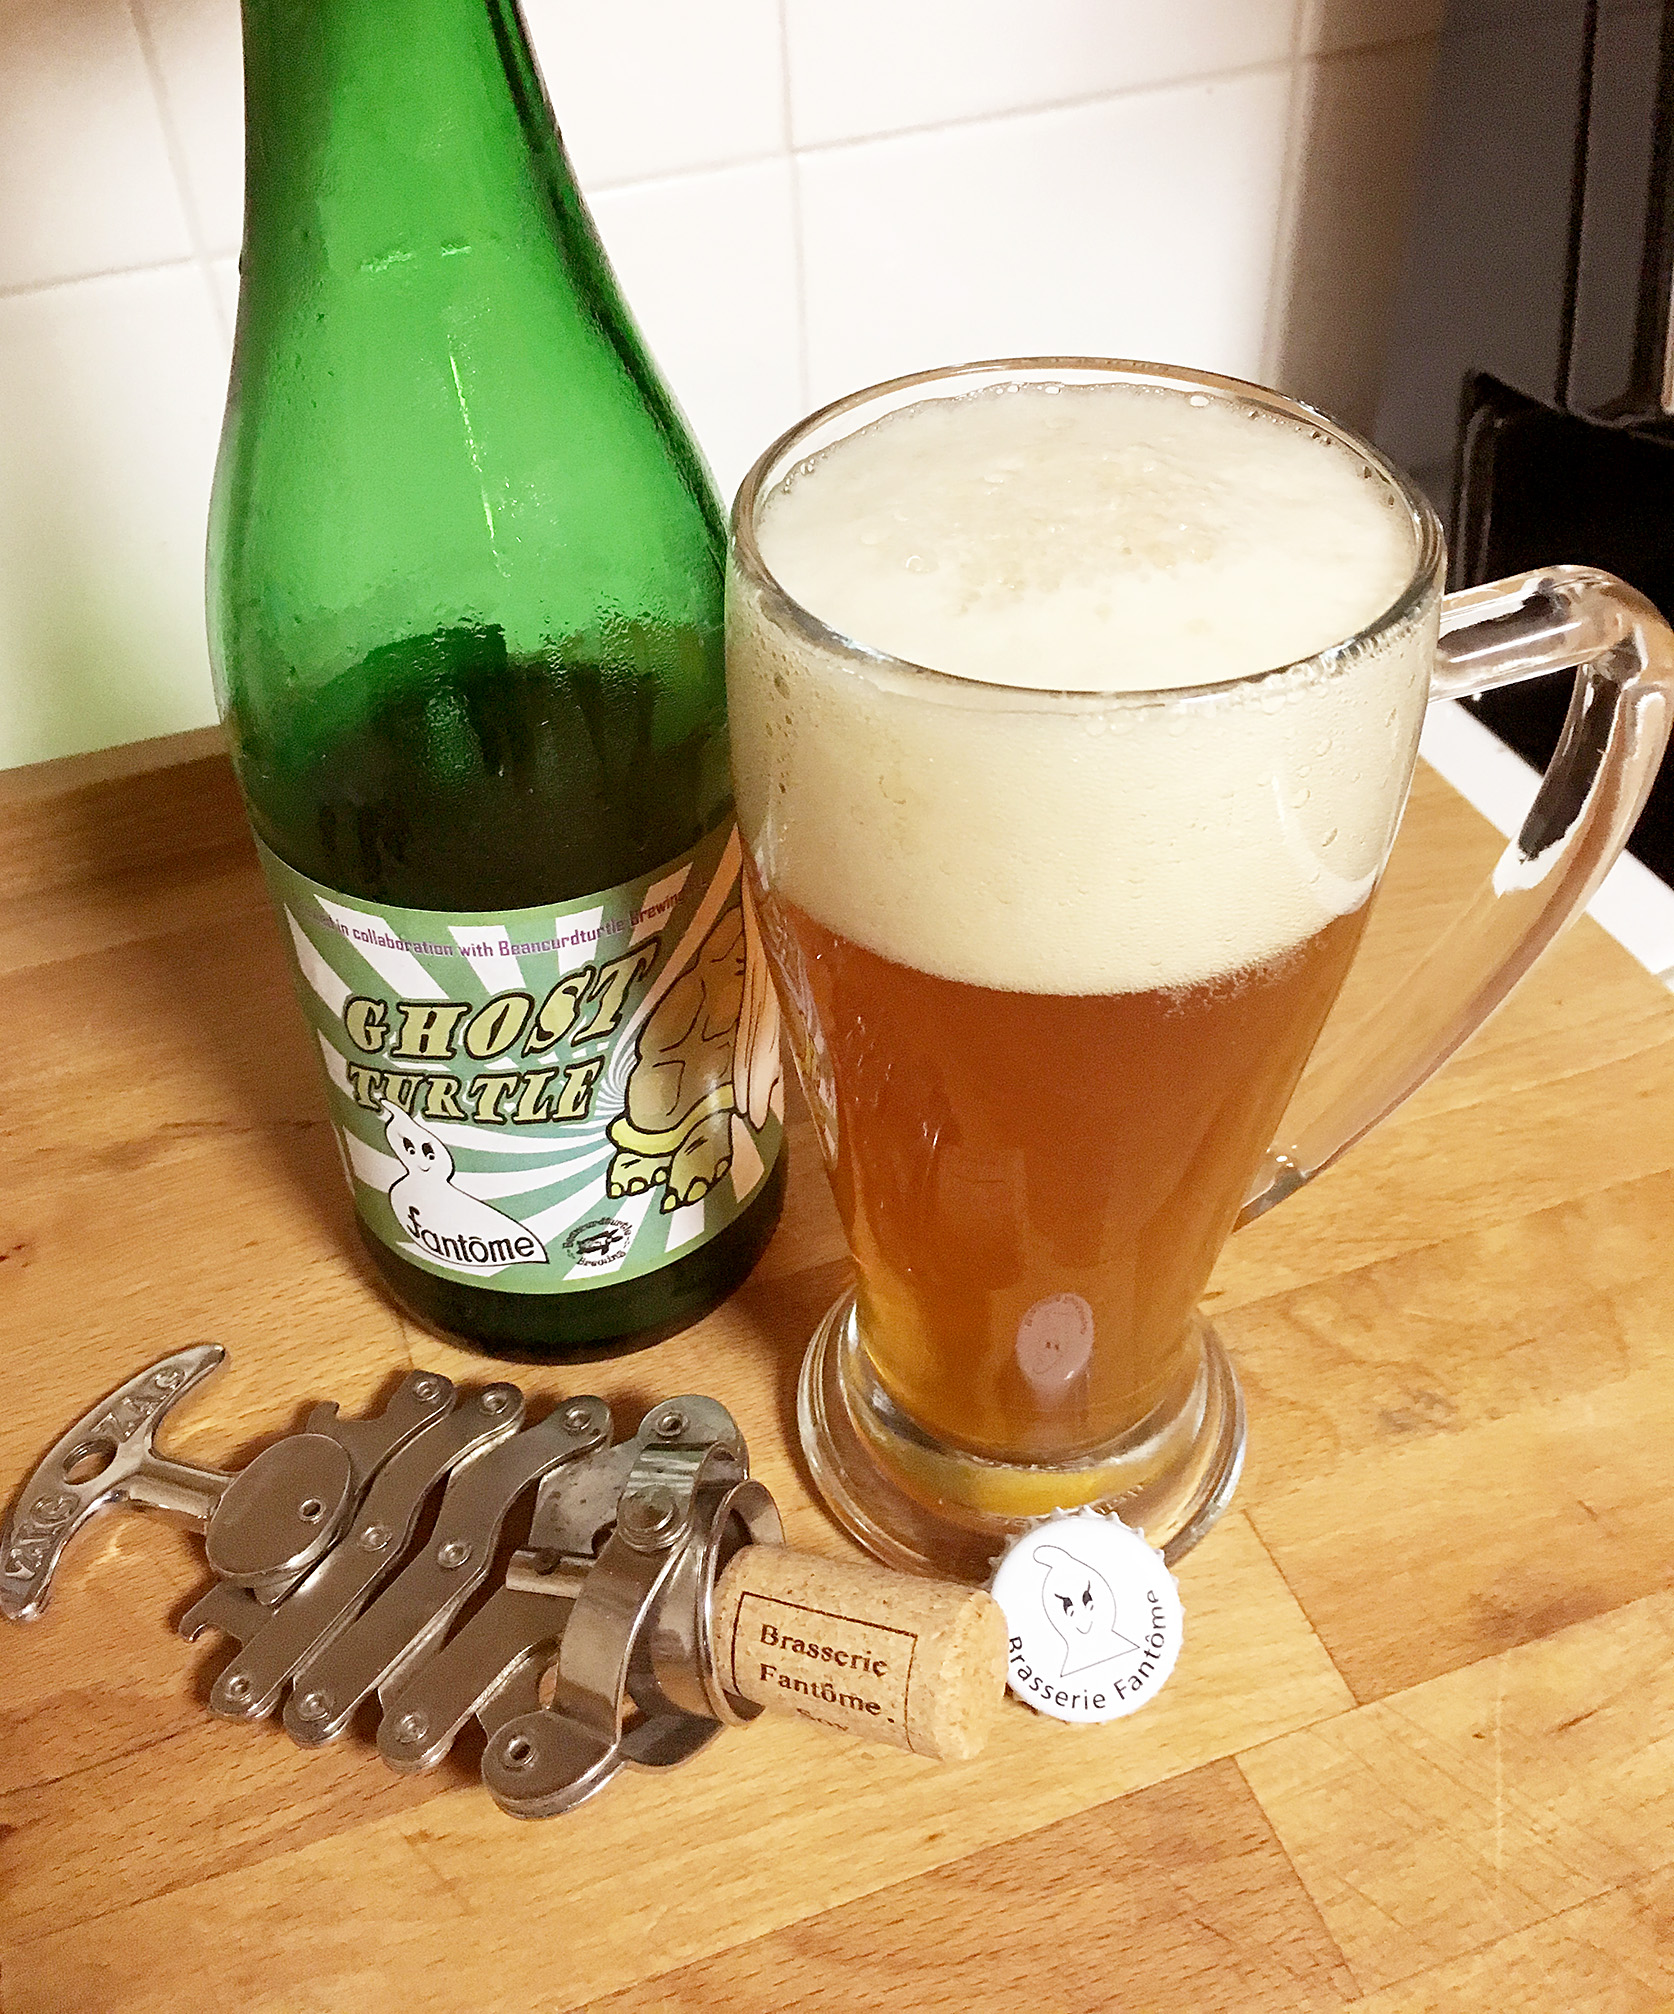 Ghost Turtle. A collaboration brew from Brasserie Fantôme and Beancurdturtle Brewing® LLC.